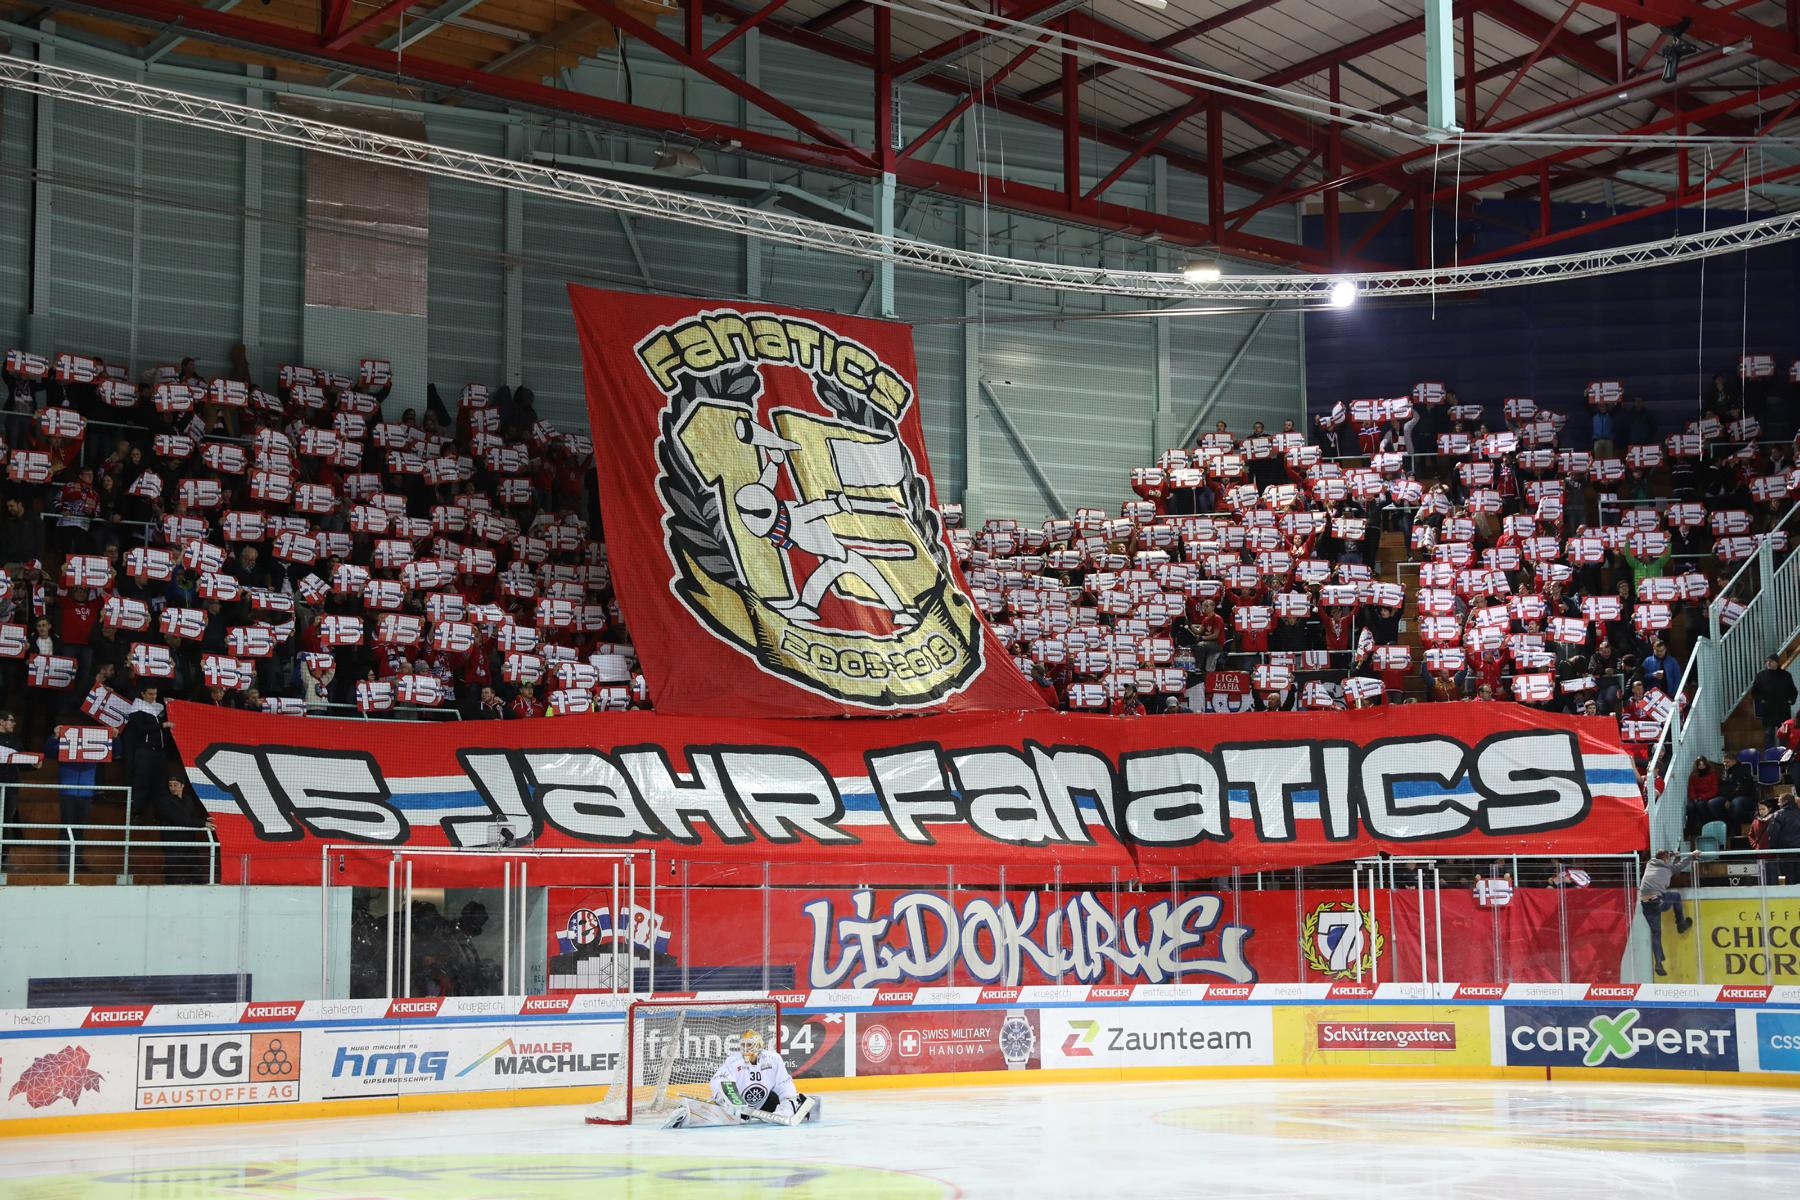 SCRJ Lakers - HC Lugano